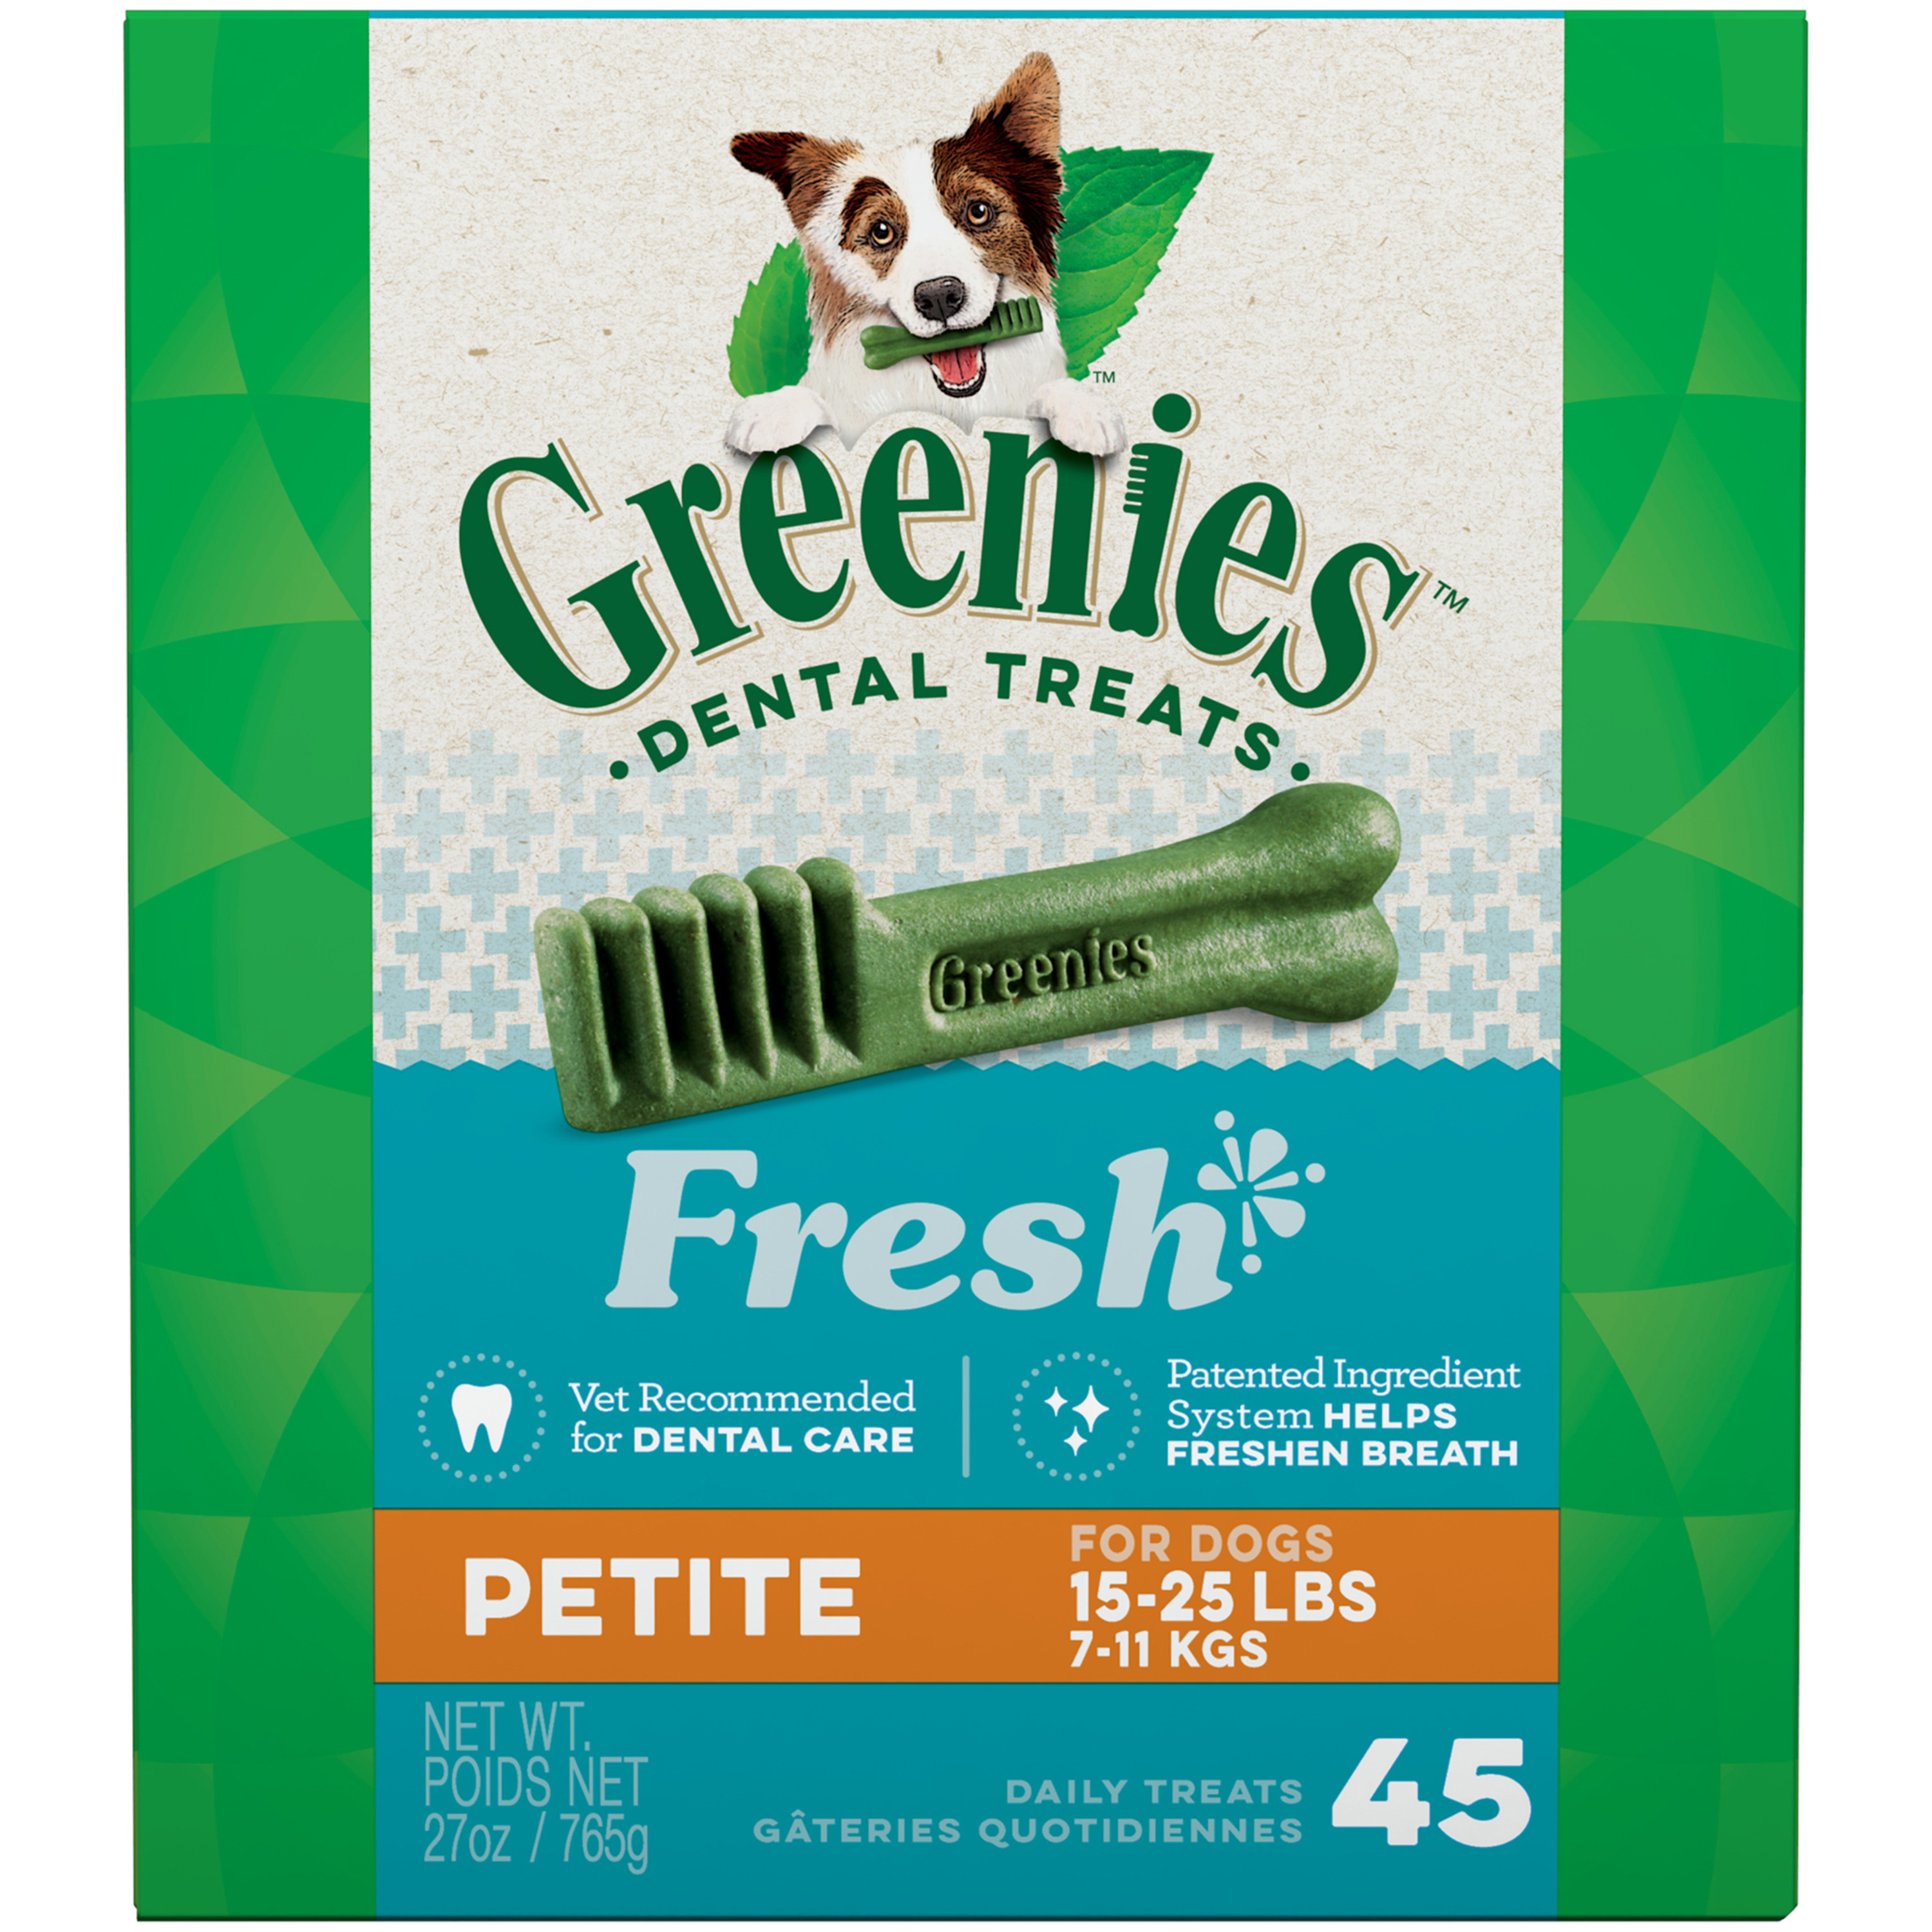 GREENIES Fresh Petite Dental Dog Treats, 27 oz. Pack (45 Treats)